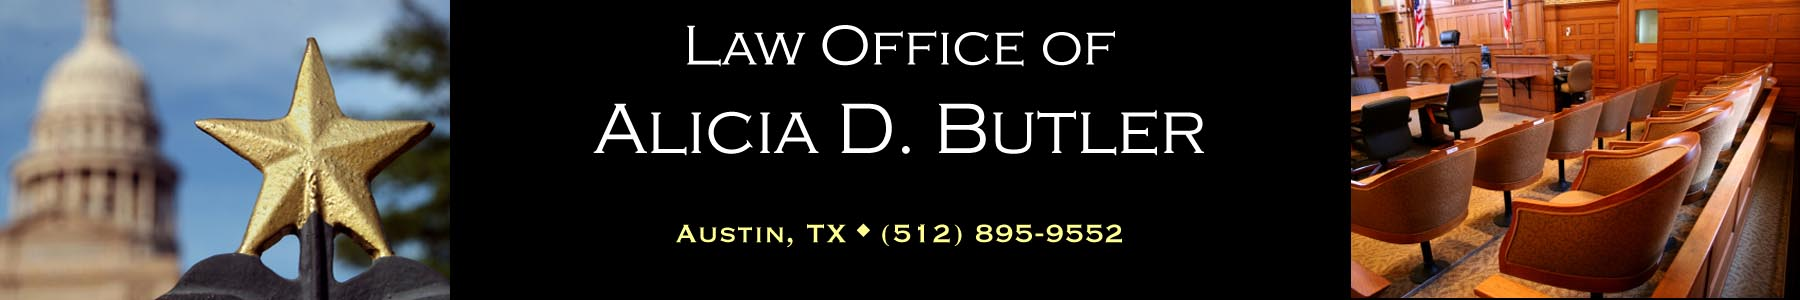 Law Office of Alicia D. Butler